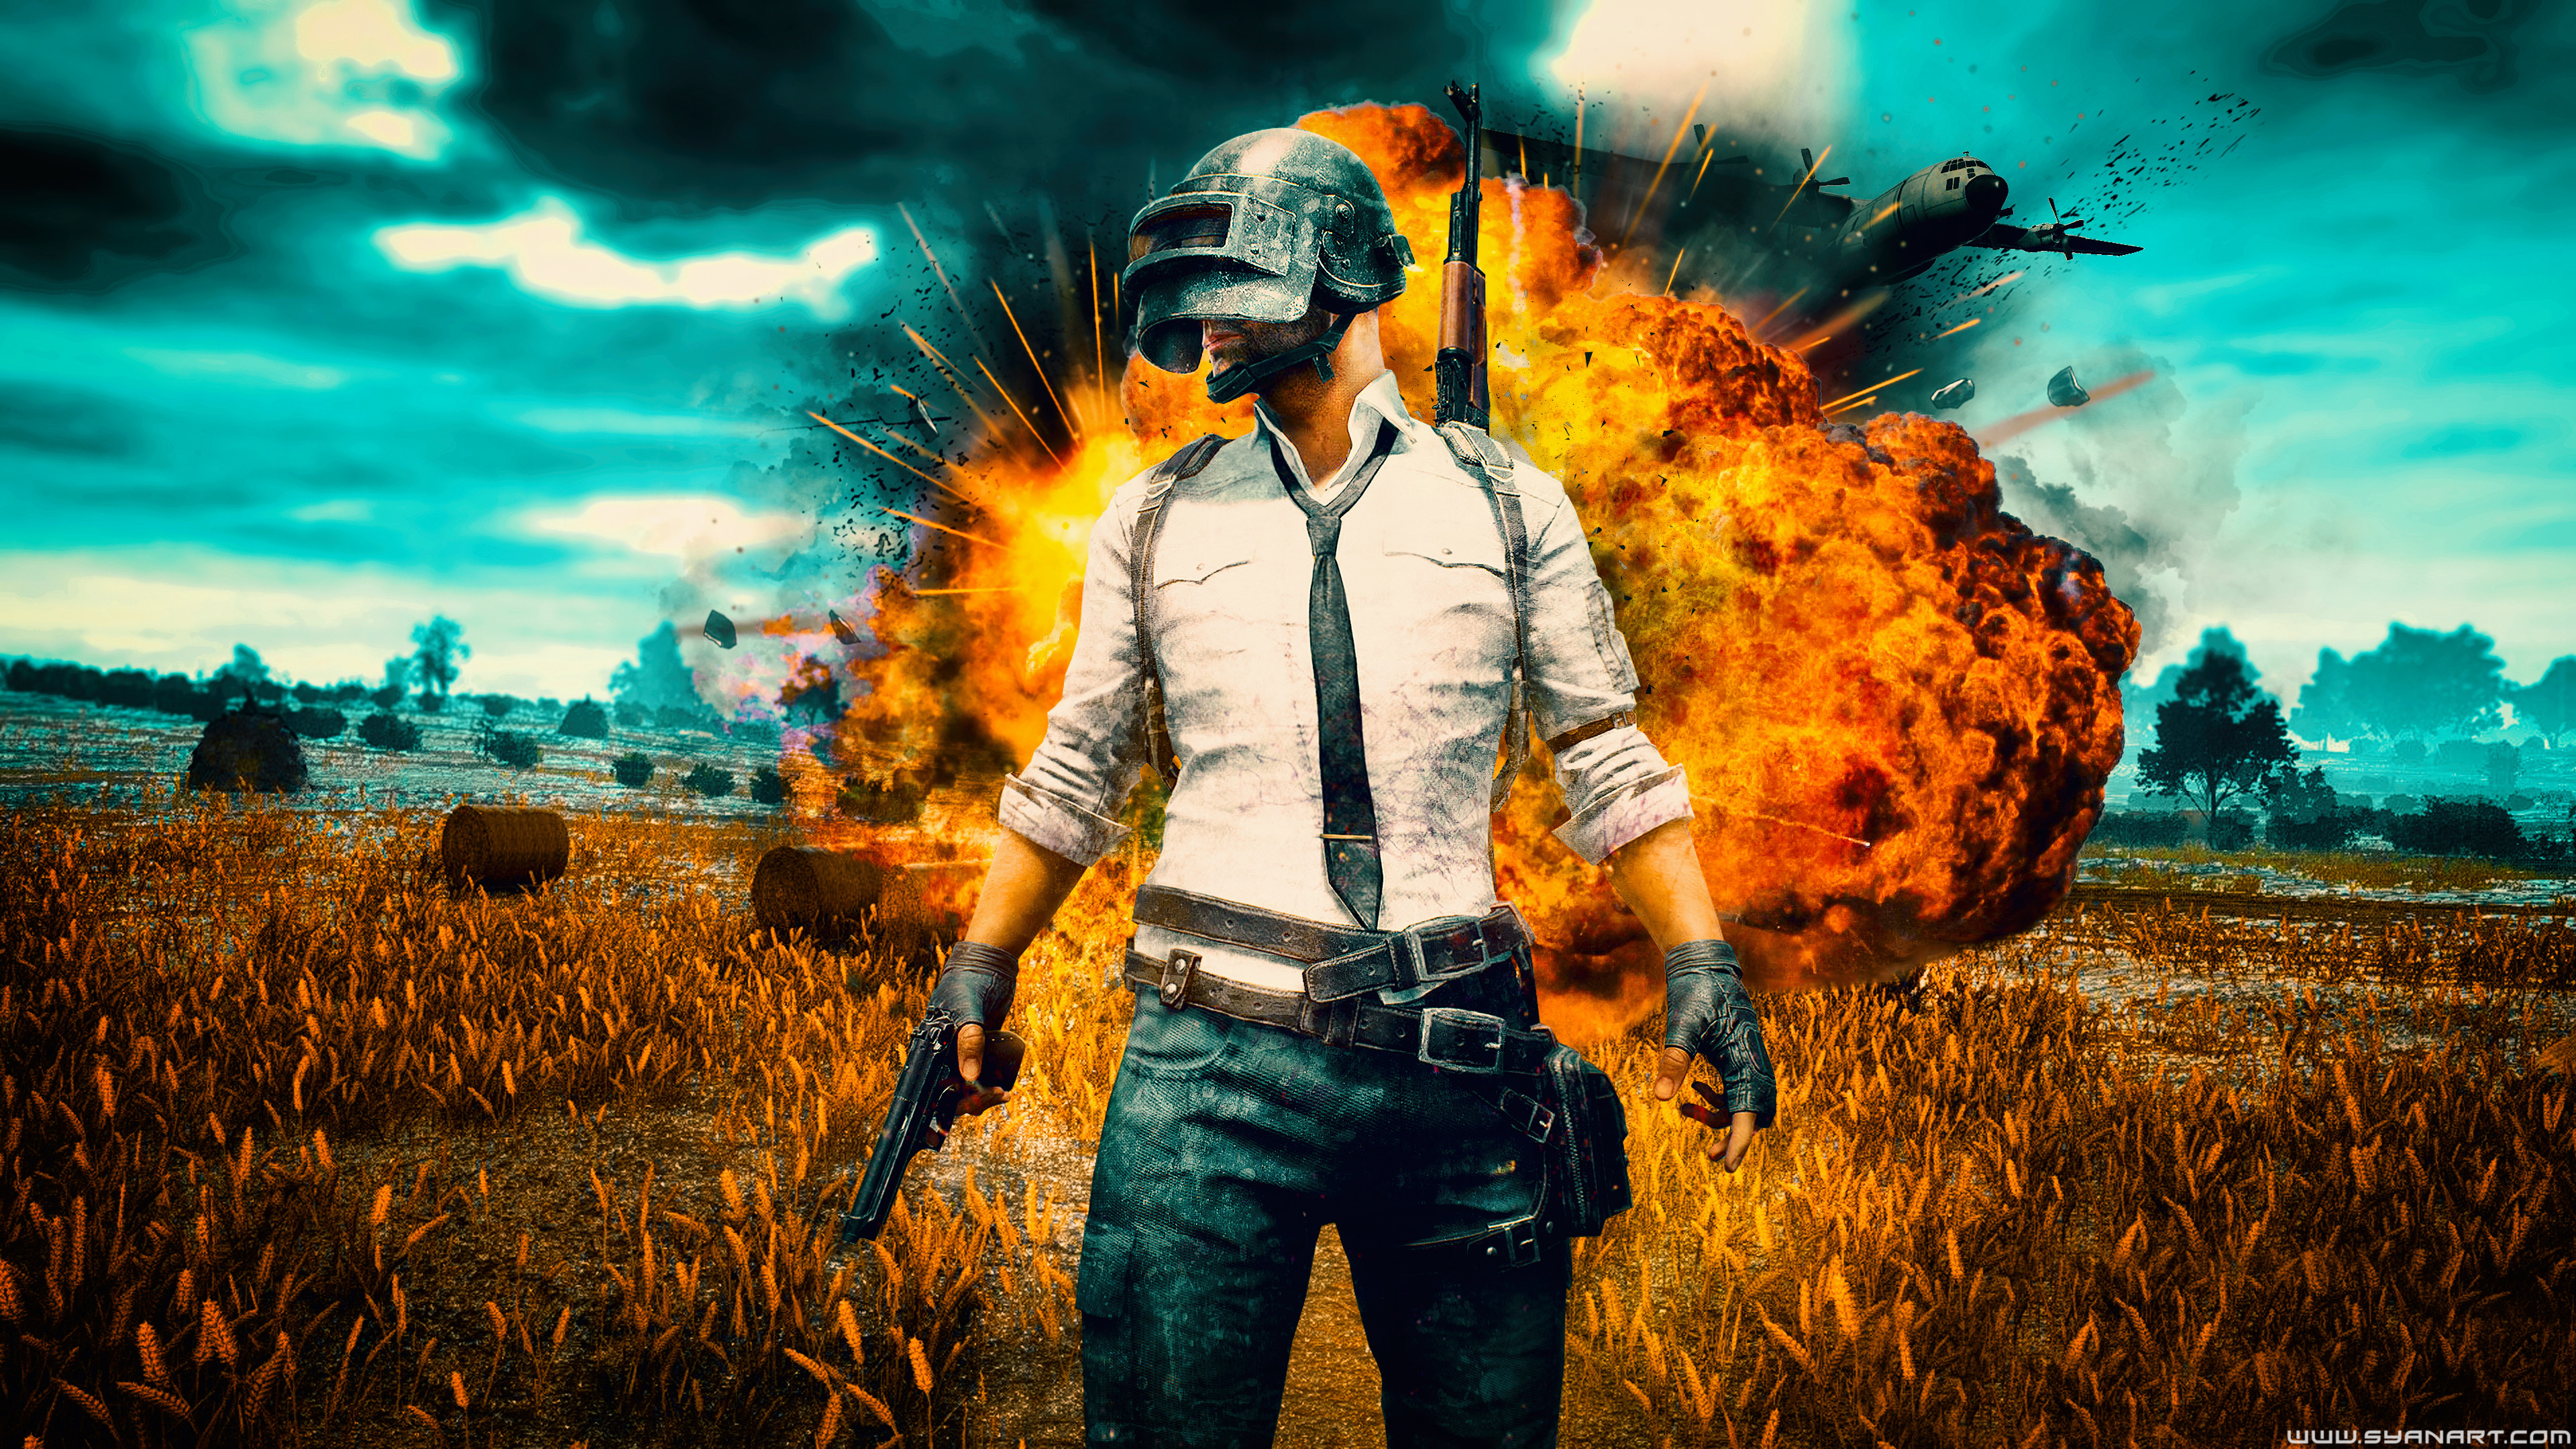 Ios Pubg Hd Yapma: Pub Wallpaper (57+ Images